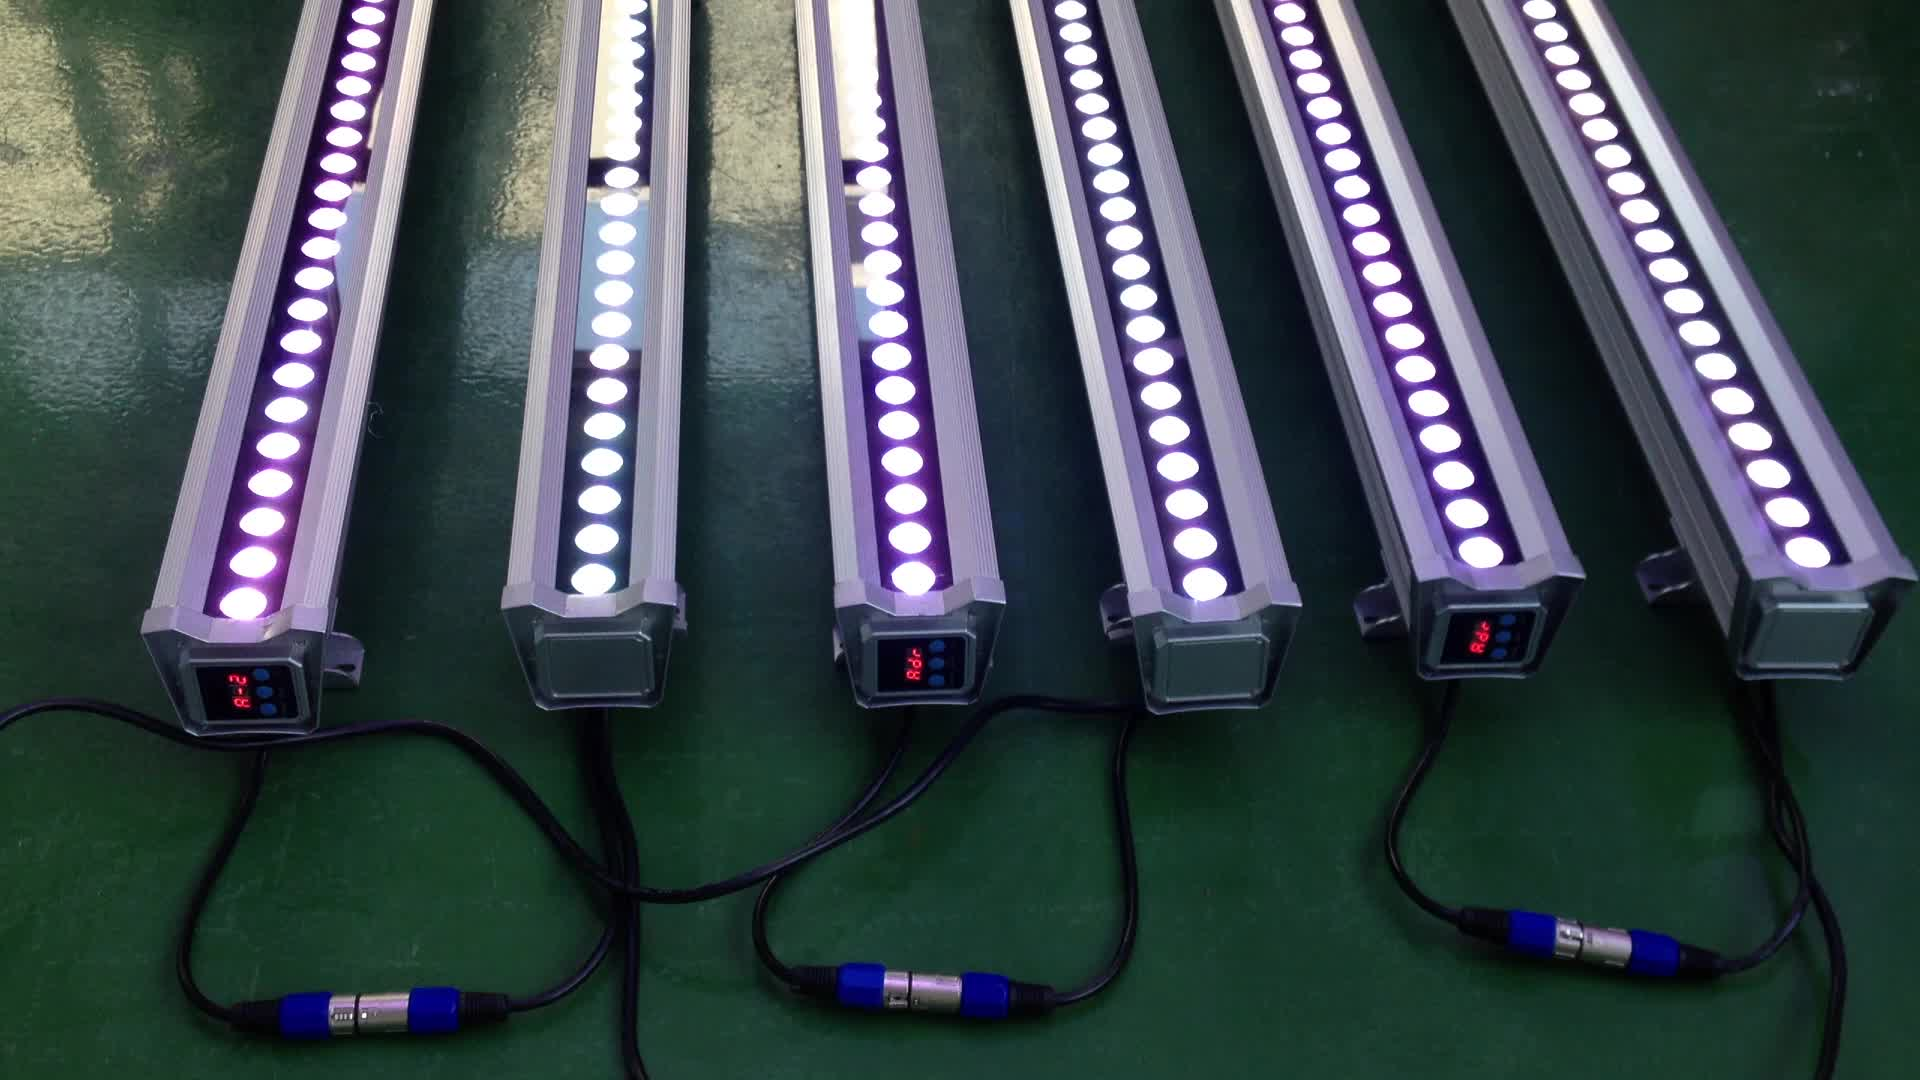 Long Life High Quality 1M Ip65 36W RGB Stick Led Wall Washers For Sale With SAA CE ROHS